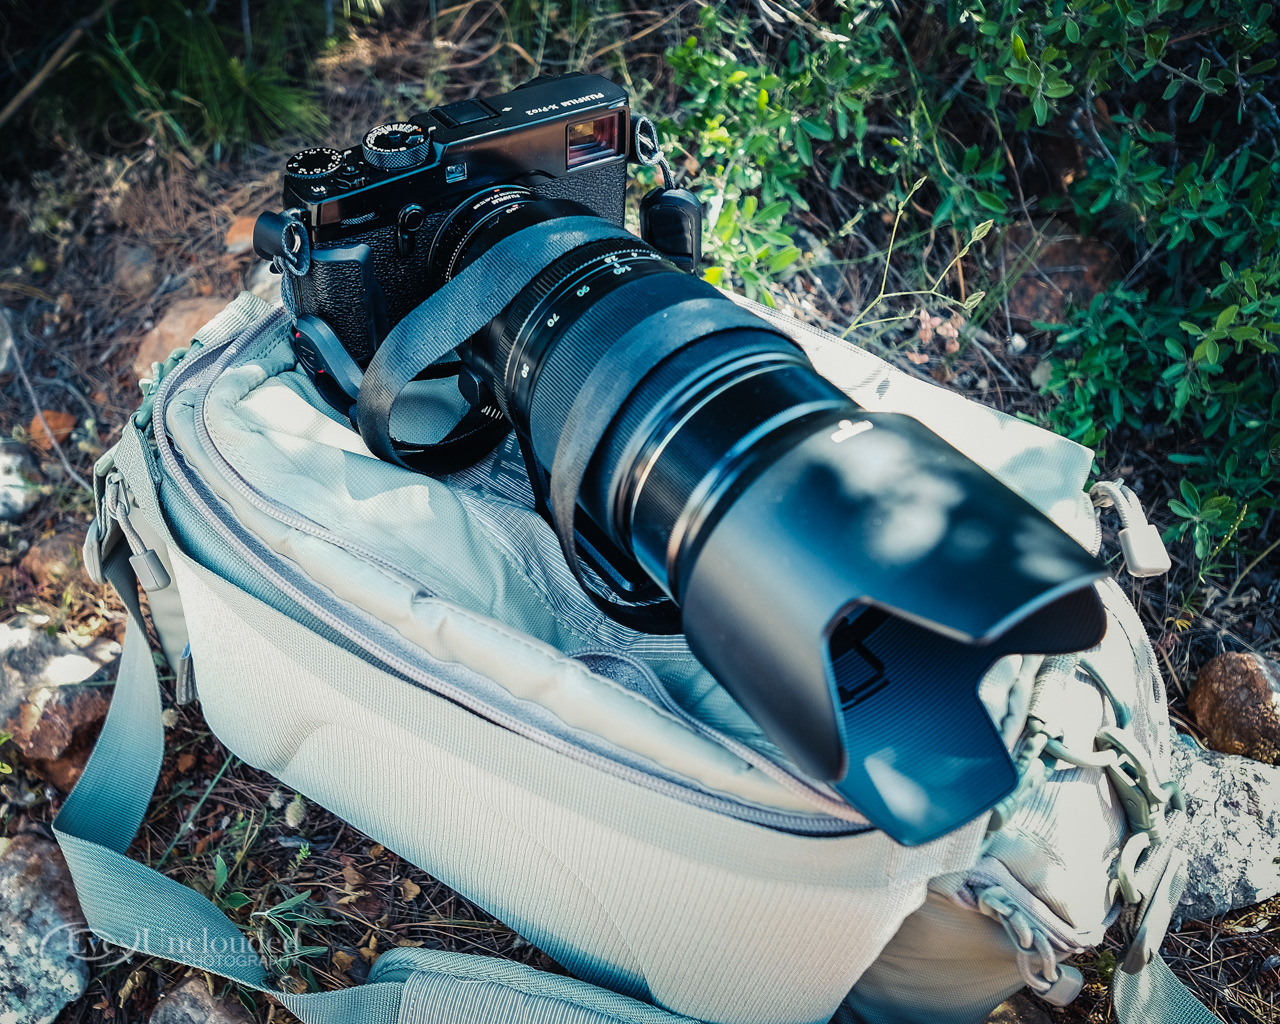 Tools of the trade: the X-Pro2 with the XF 50-140mm f/2.8 and the XF 1.4X TC